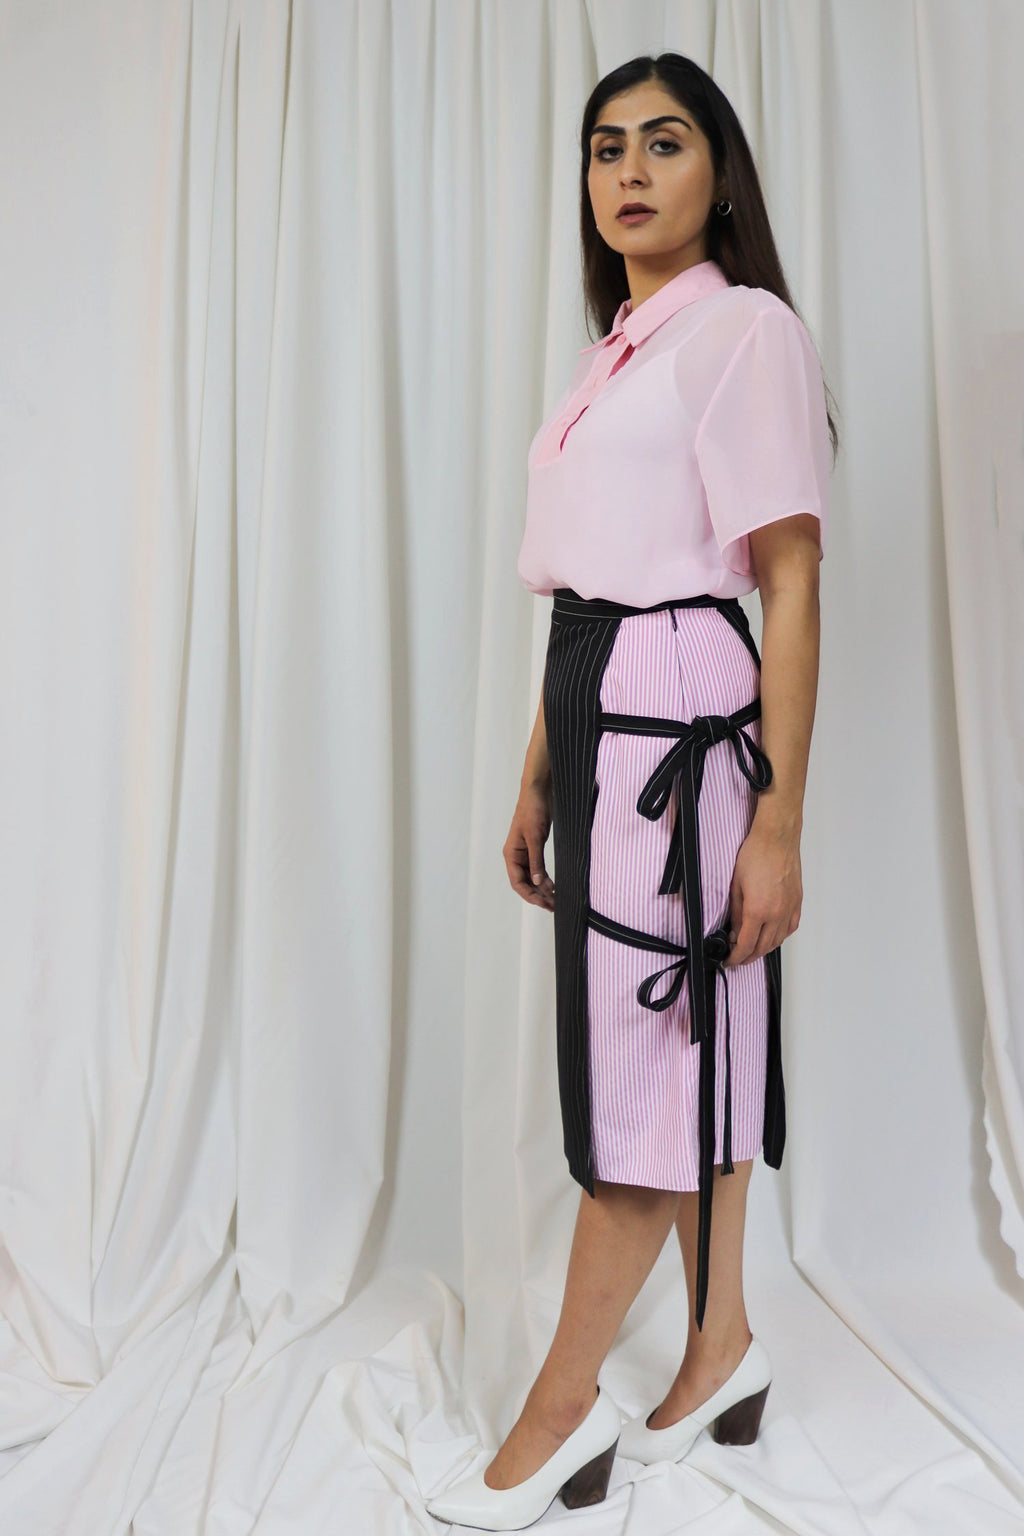 Rocket x Lunch Pink Chiffon Polo Top